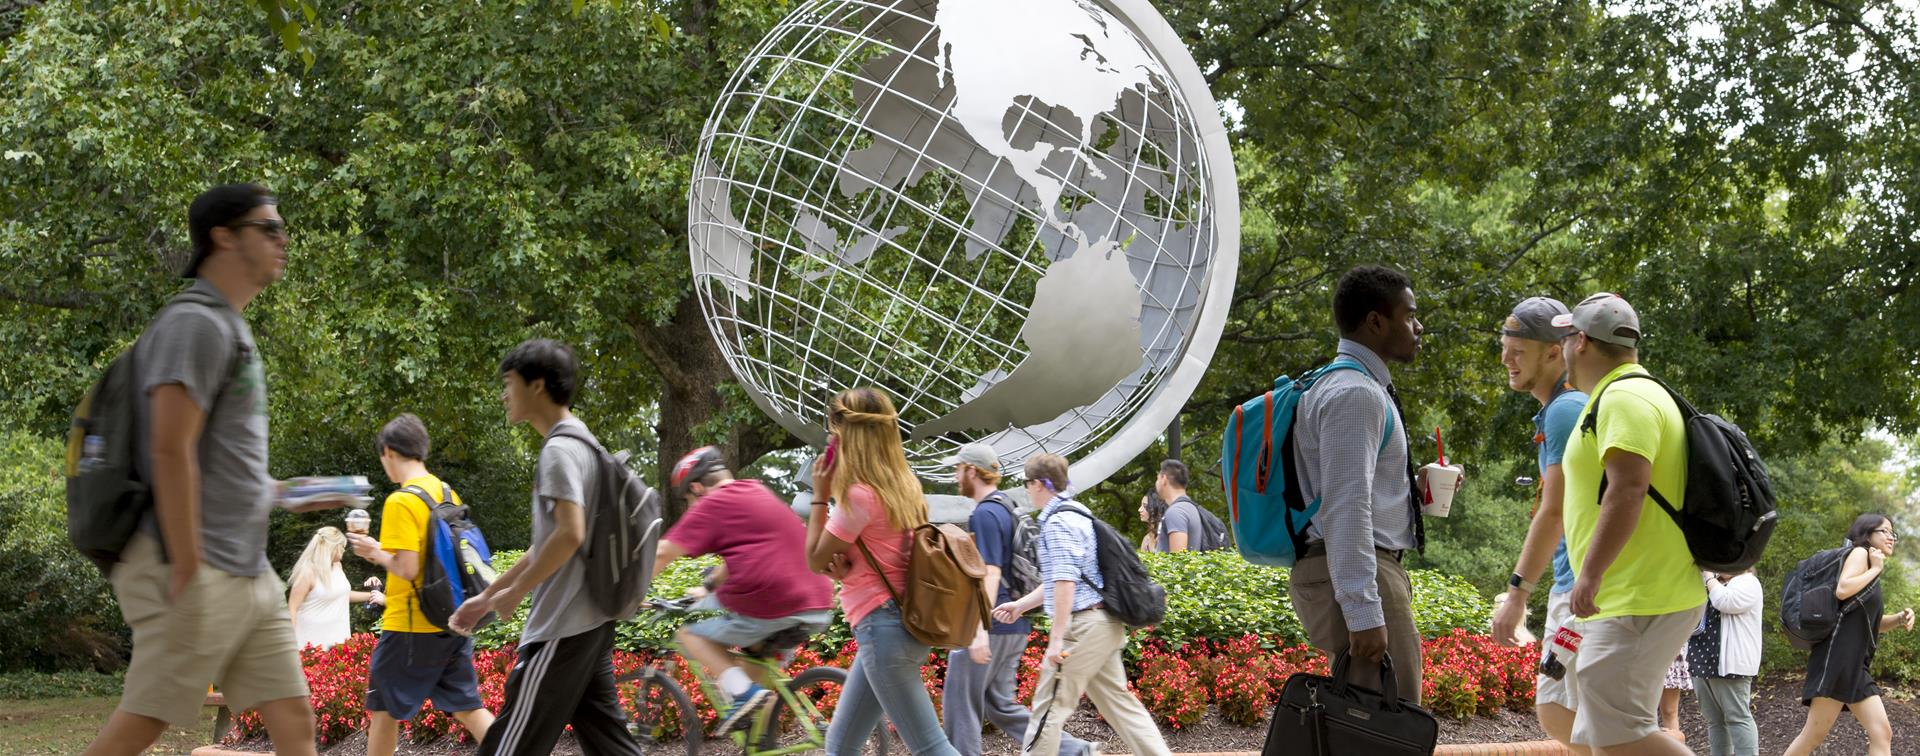 Picture of students walking on campus in front of a statue of a globe.